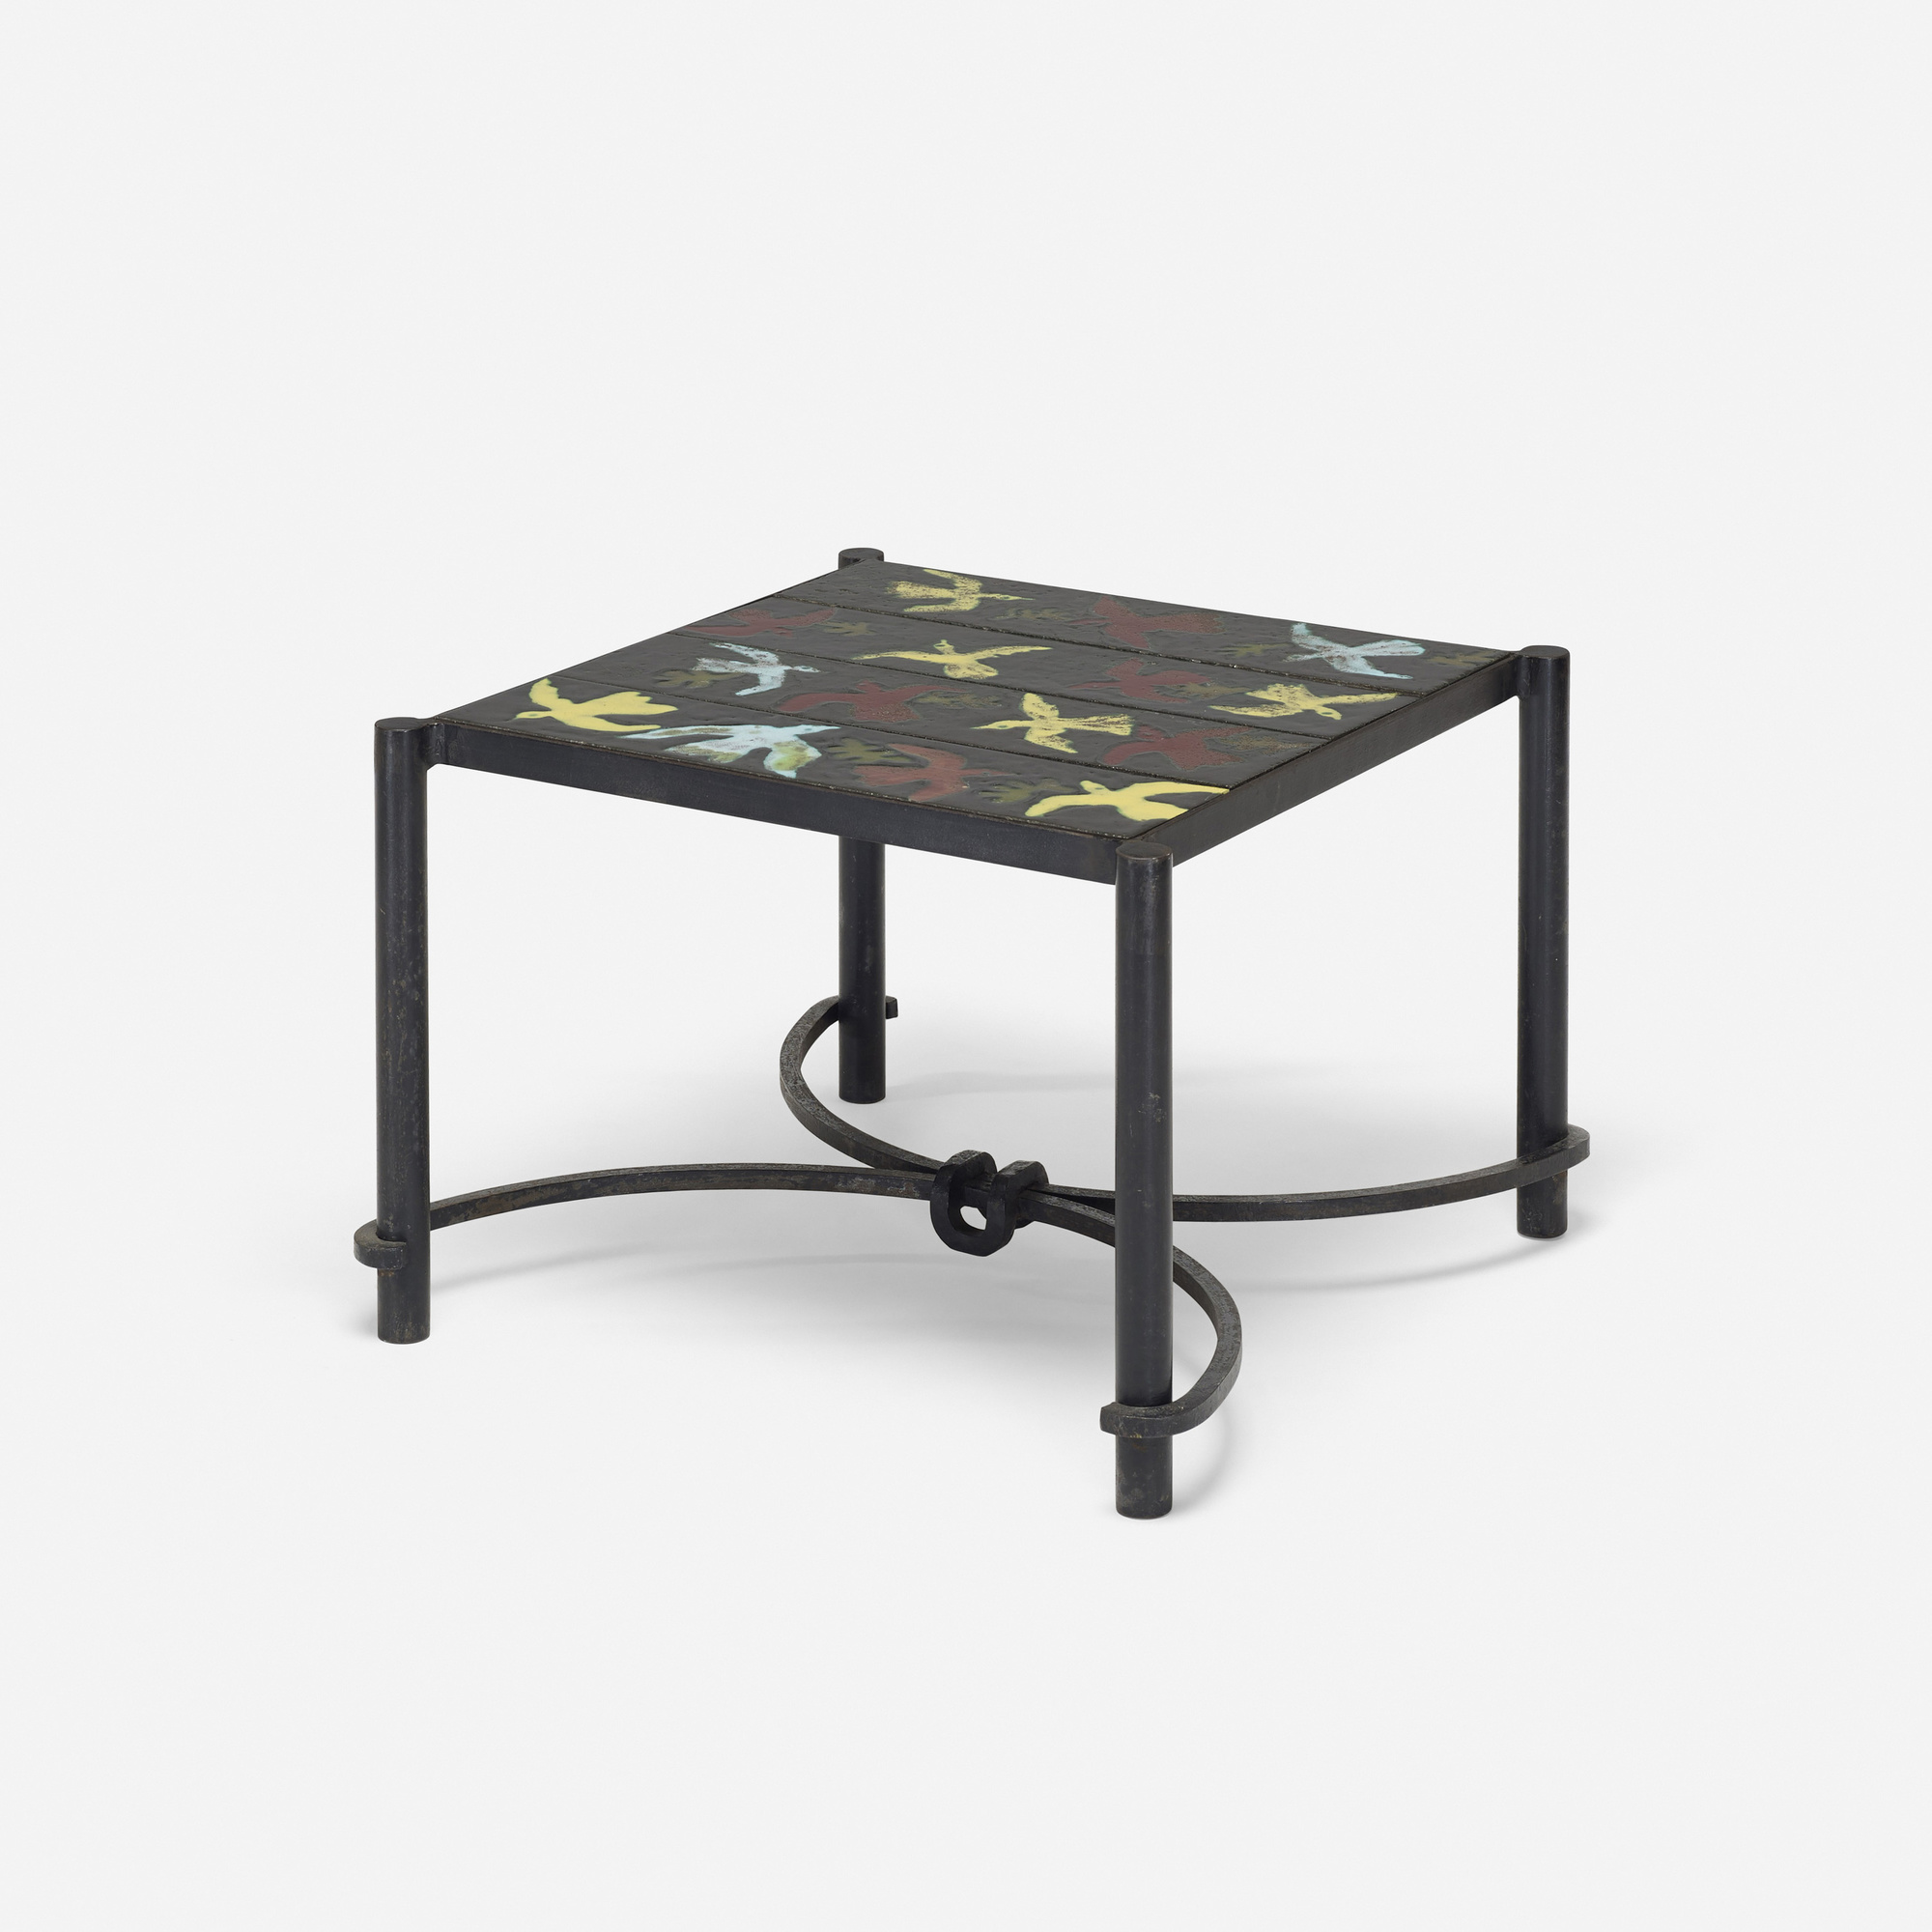 257: Jacques Adnet and Guidette Carbonell / occasional table (1 of 2)